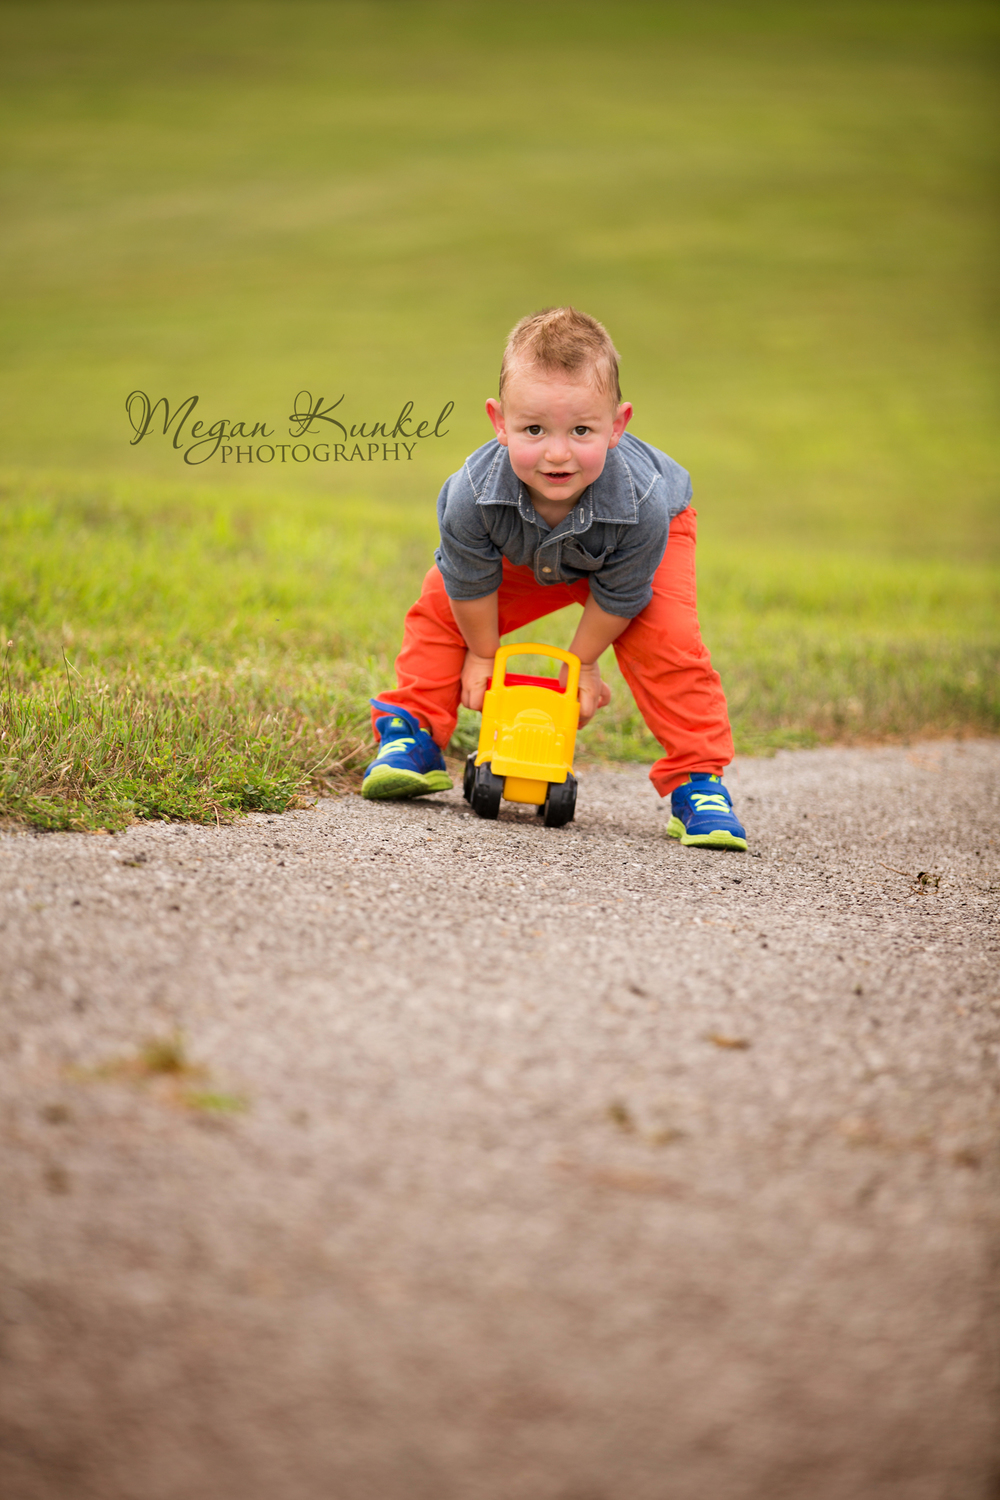 Megan Kunkel Photography | London KY Photographer | Children's Photography